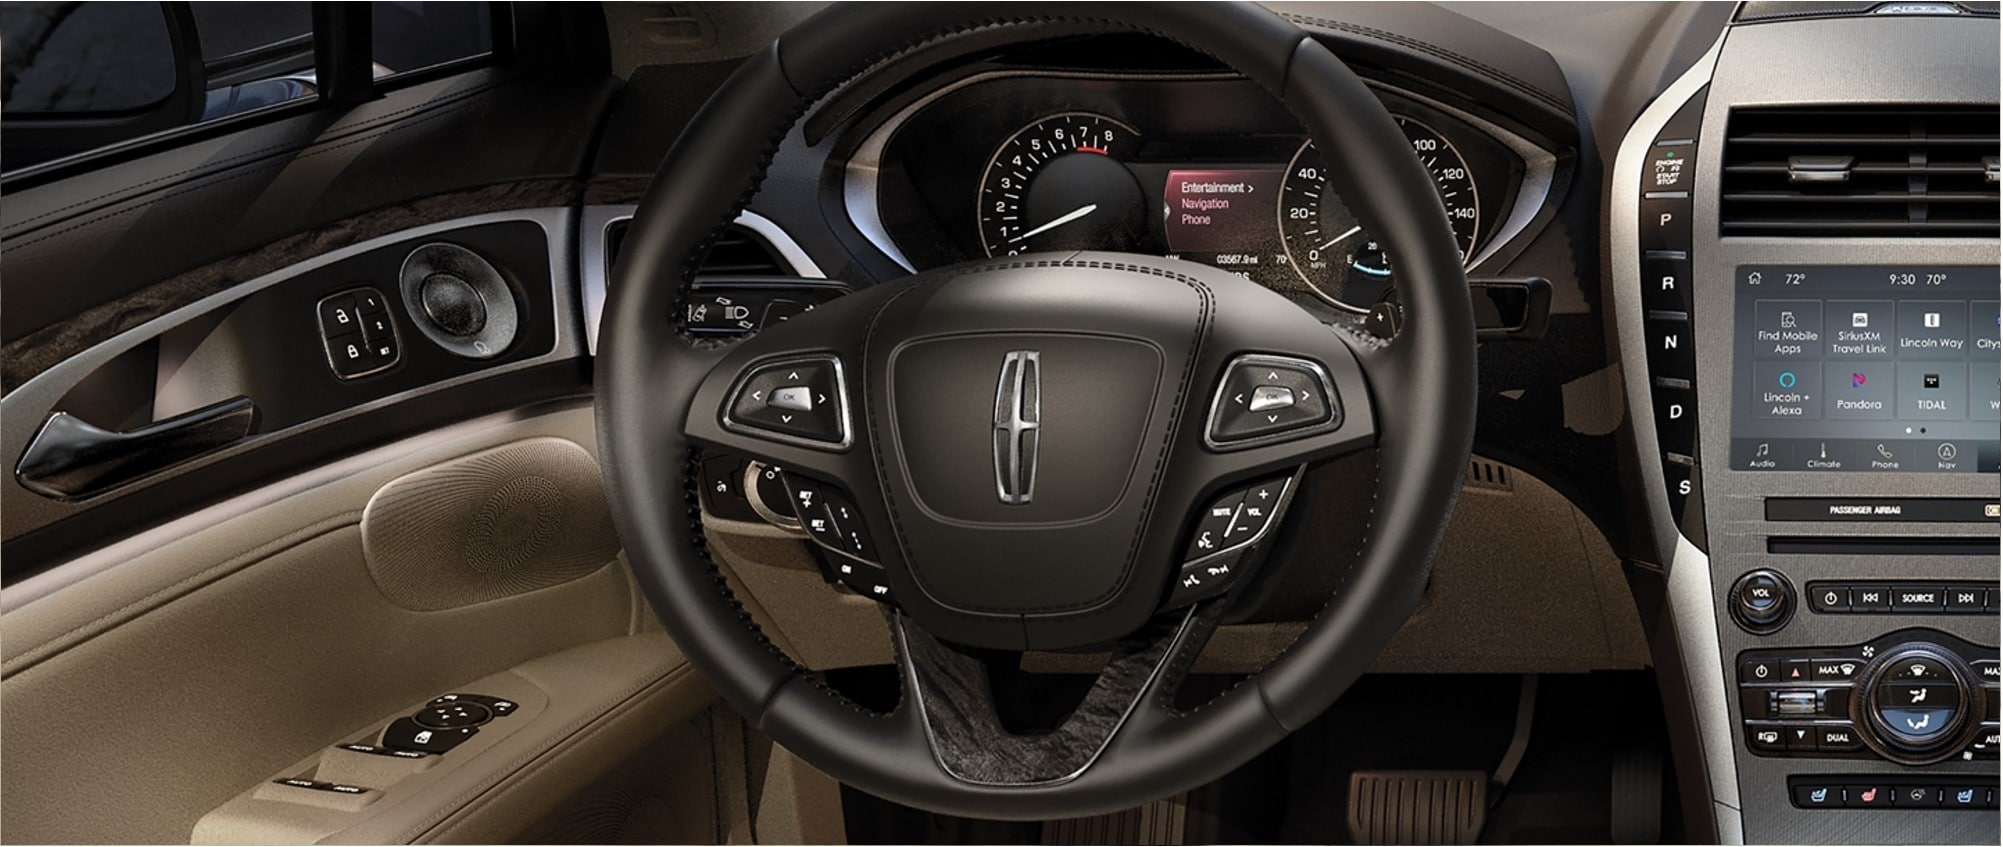 A 2020 Lincoln MKZ dark interior dashboard